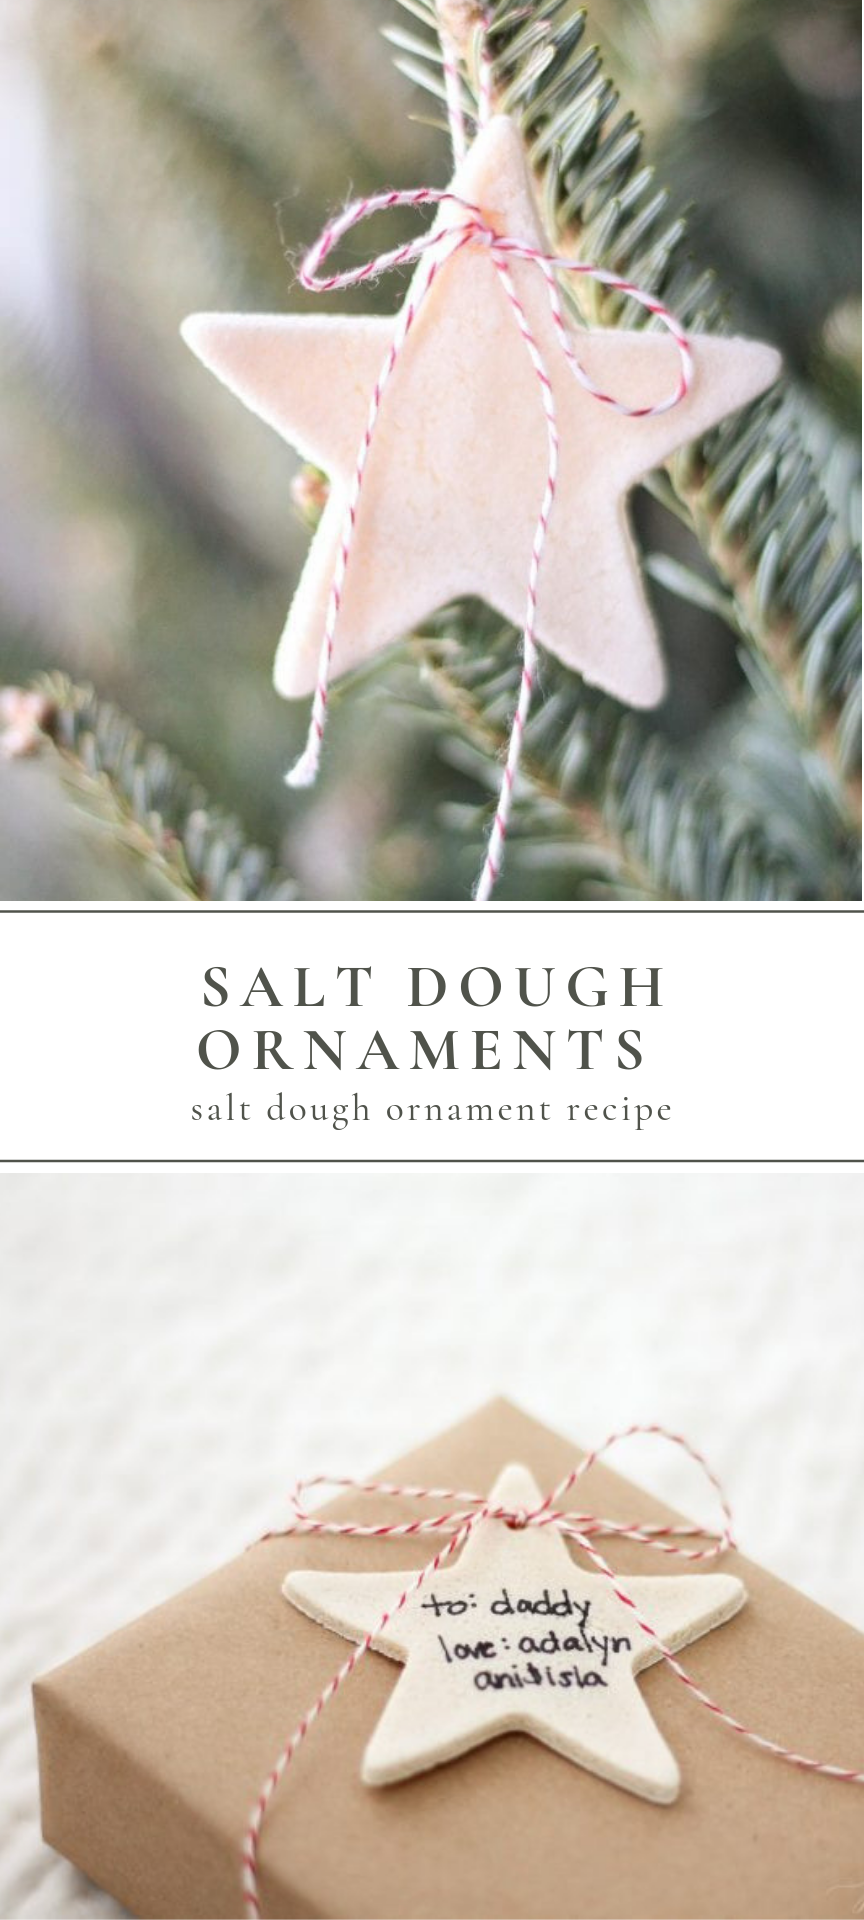 Salt Dough Ornaments (Salt Dough Ornament Recipe)